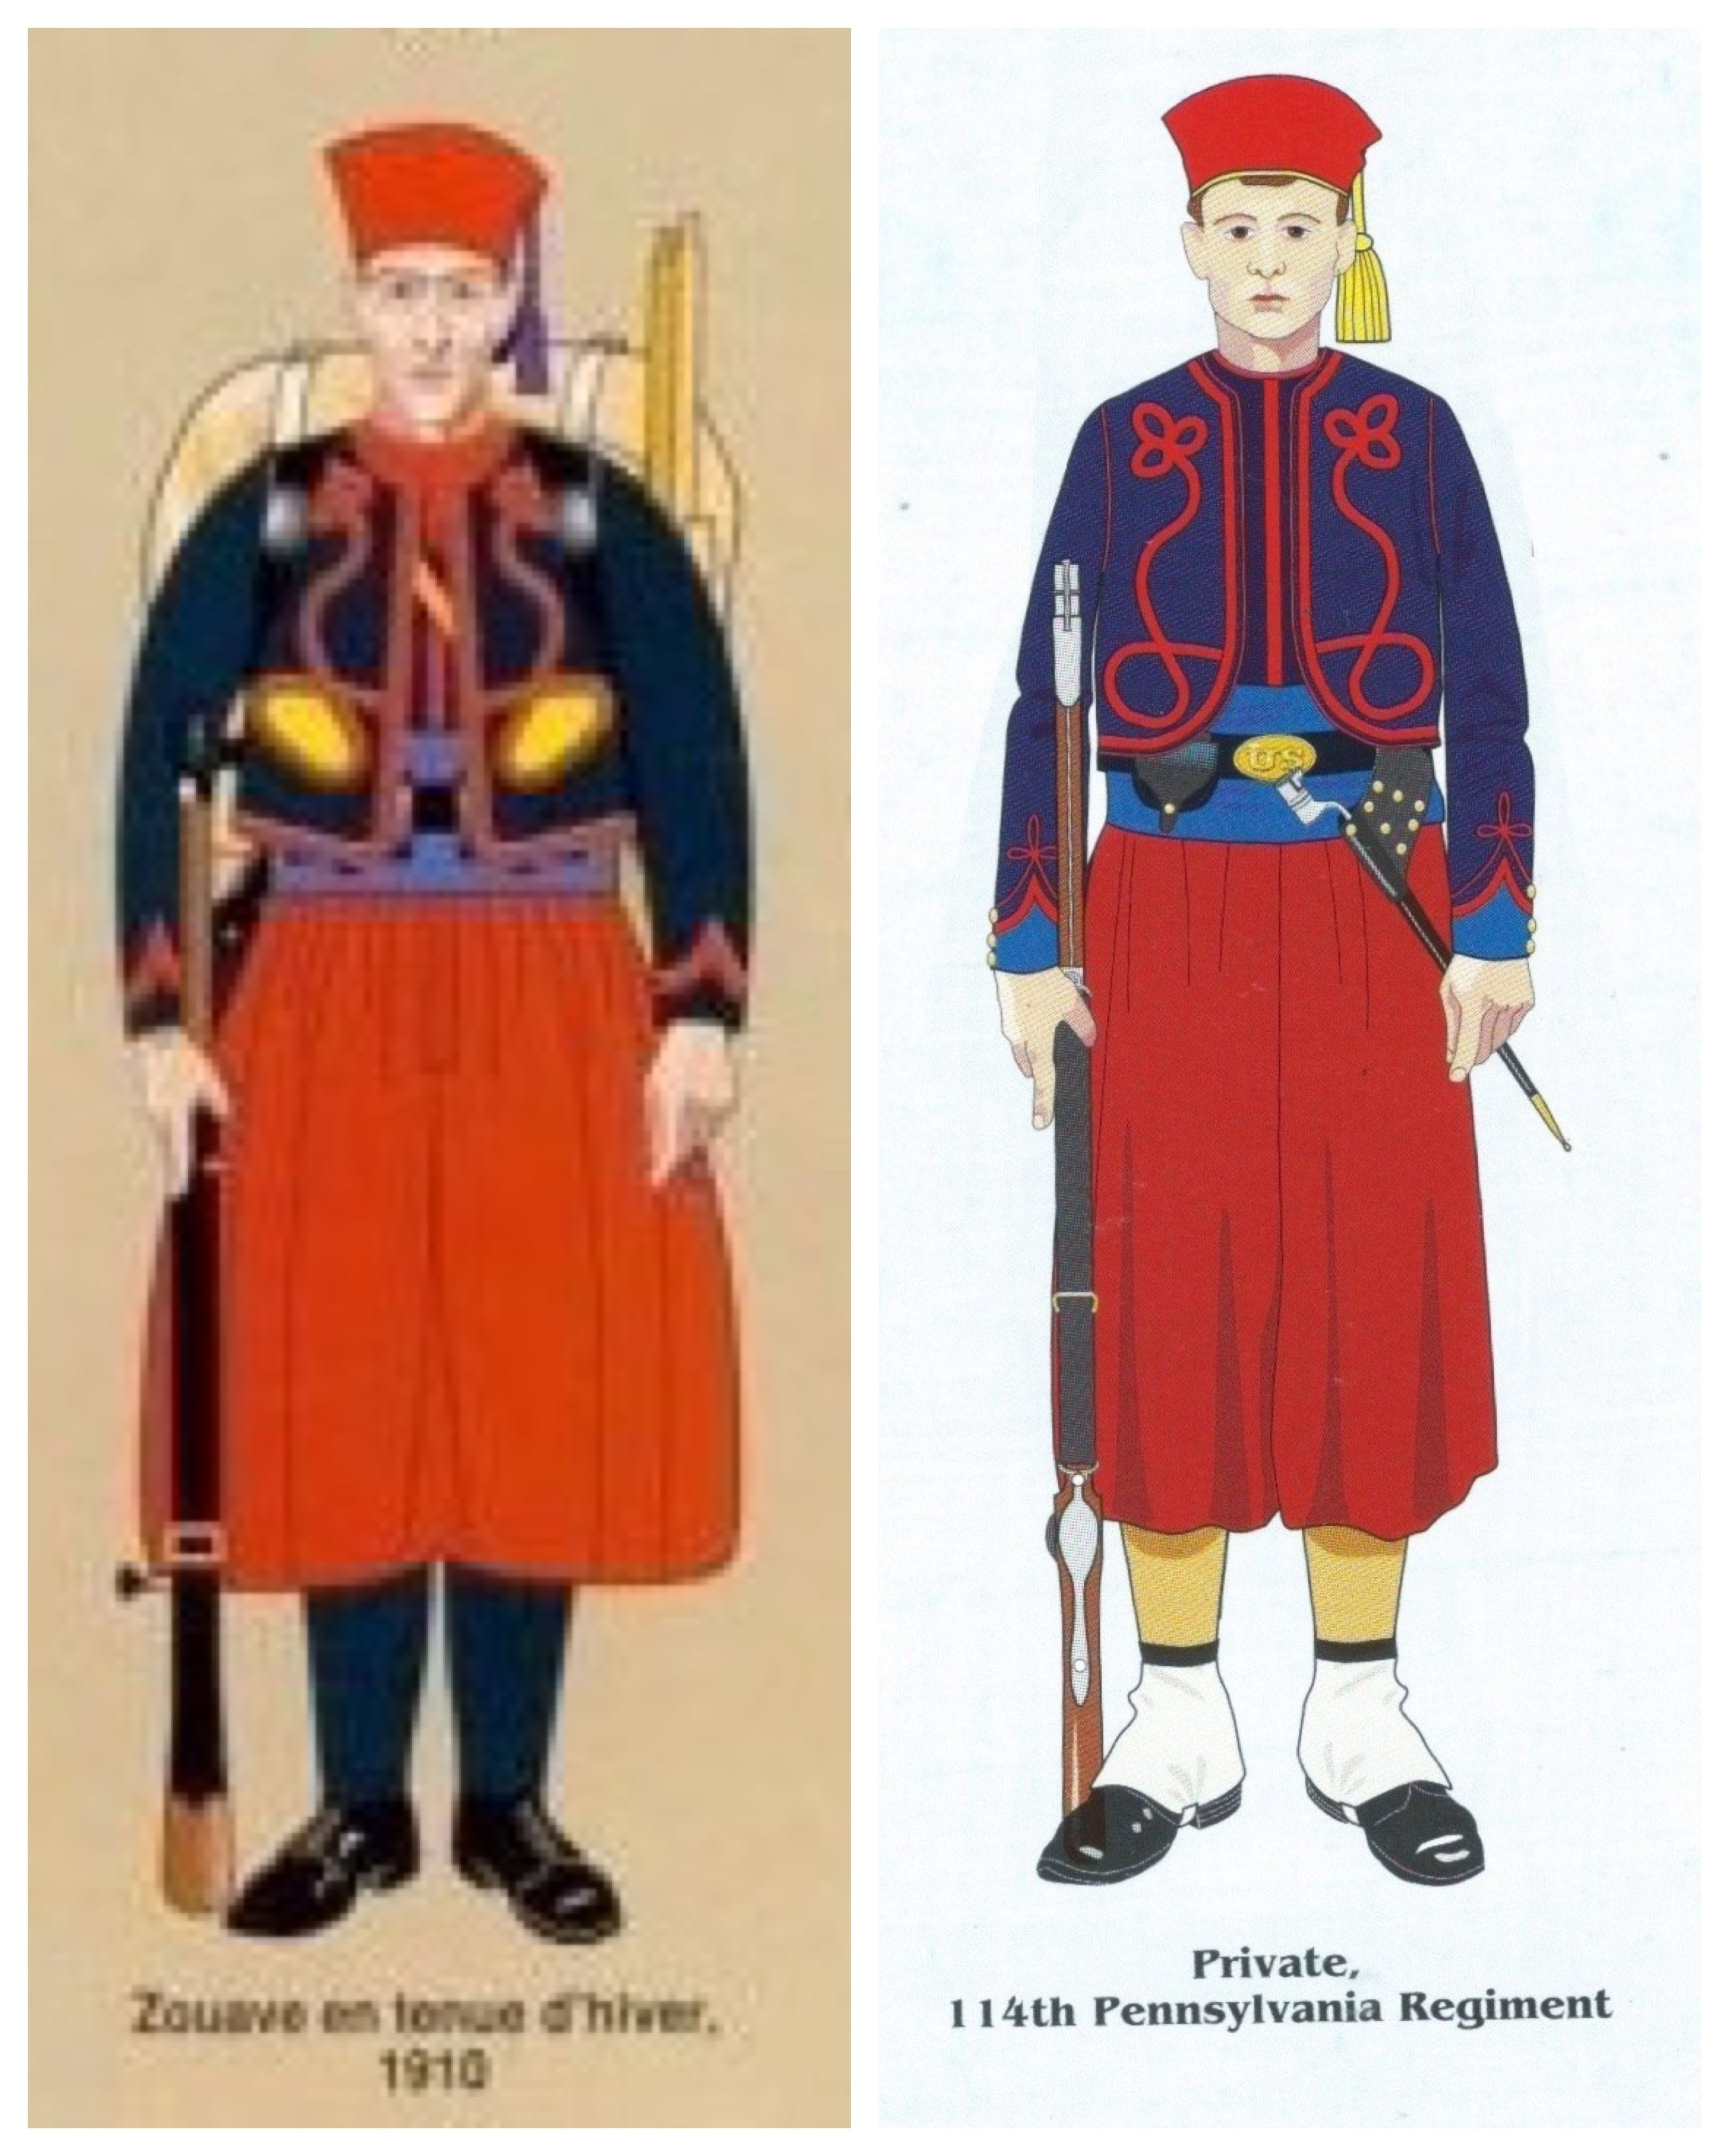 Comparing Uniforms Of The American Civil War Zouaves Uniform With The Traditional French